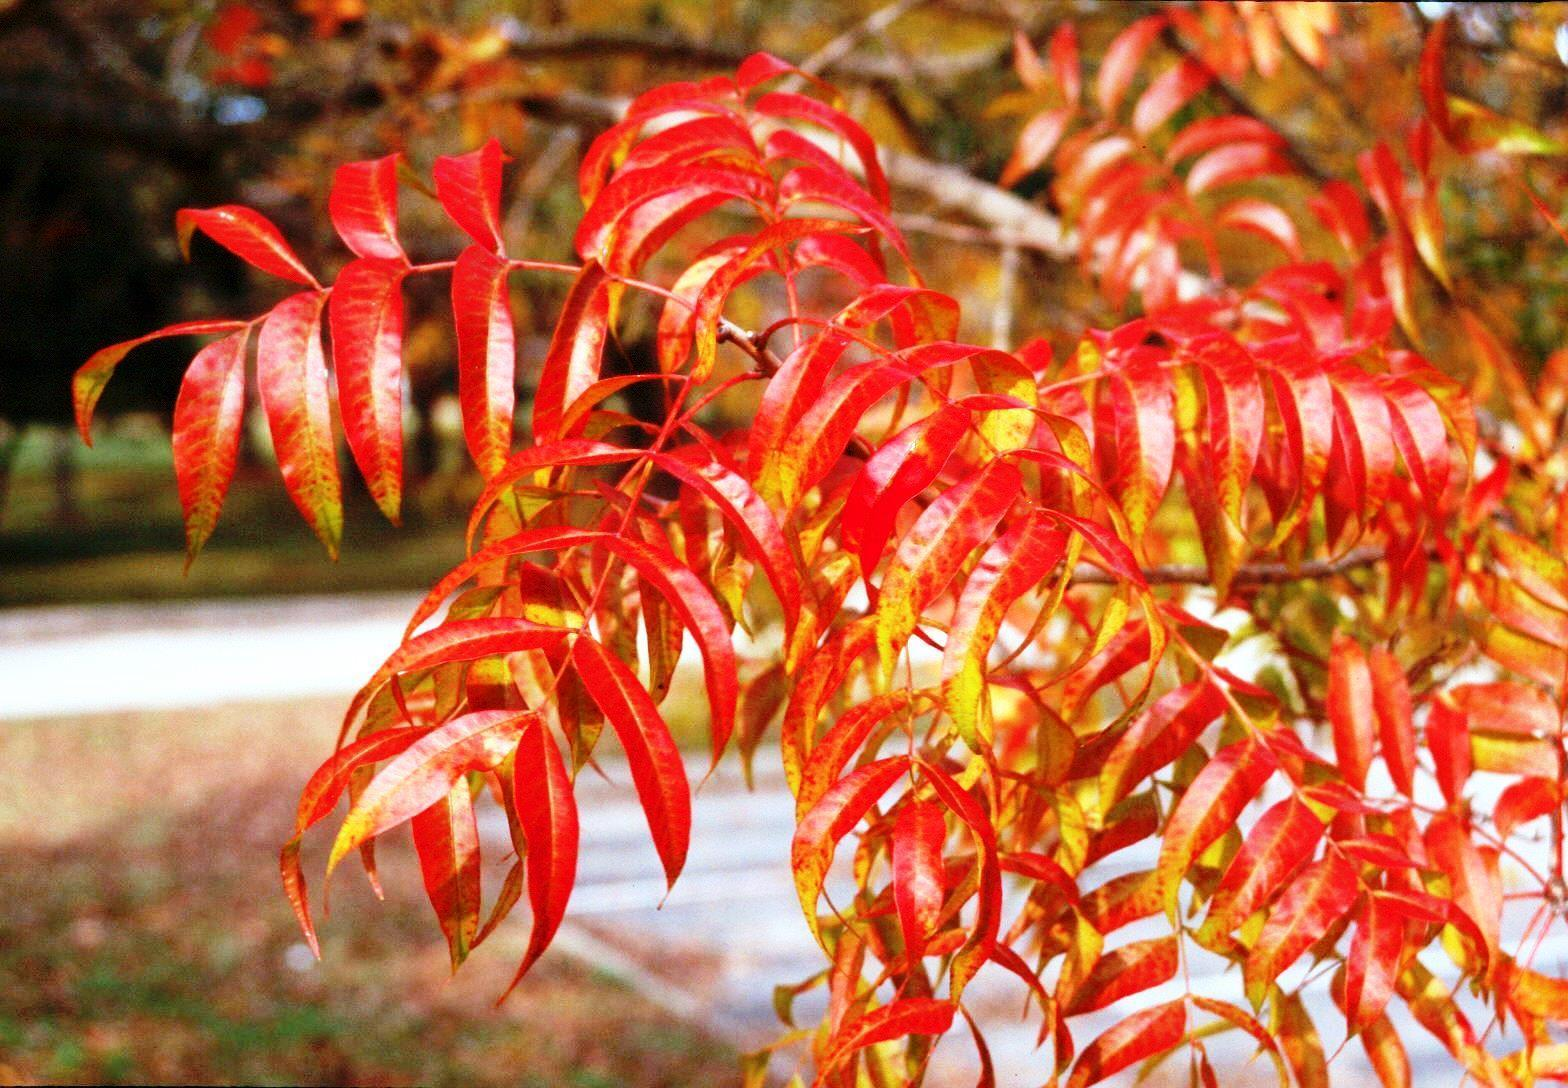 Chinese Pistache – Ornamental Plant of the Week for October 5 2015